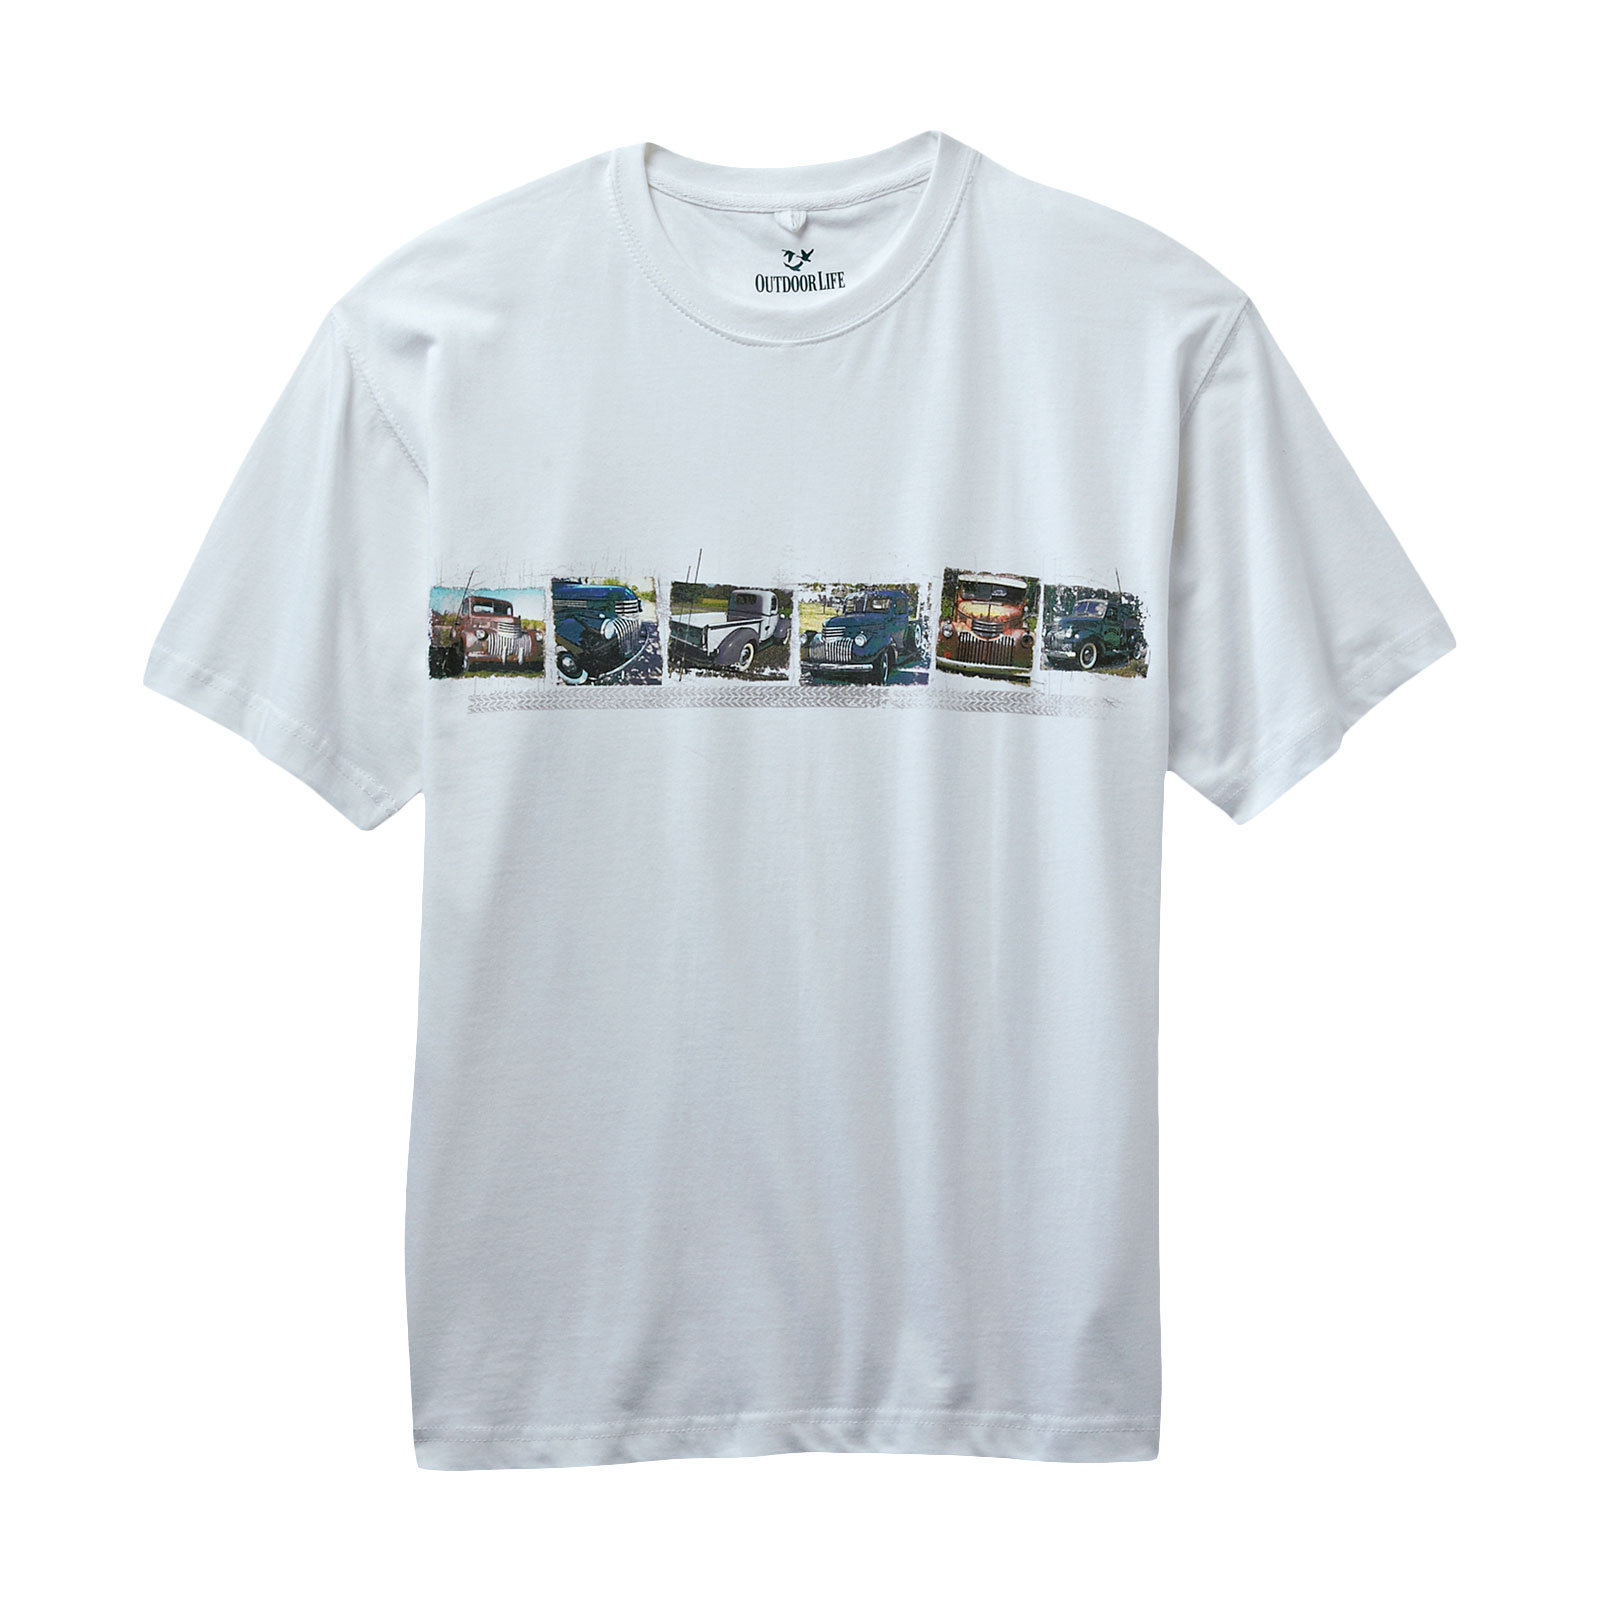 Men's Graphic T-Shirt - Classic Trucks